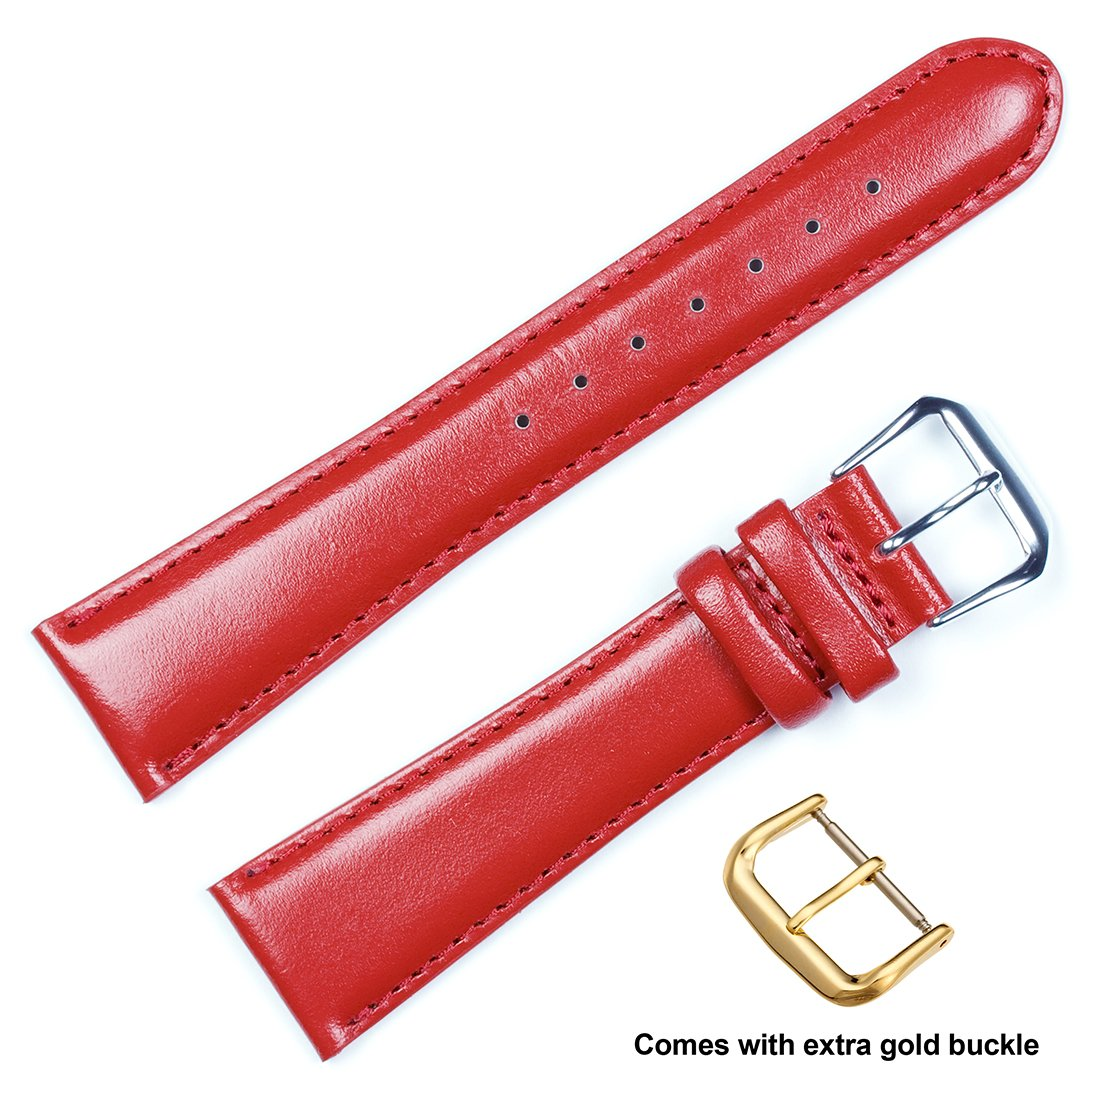 deBeer brand Smooth Leather Watch Band (Silver & Gold Buckle) - Red 19mm